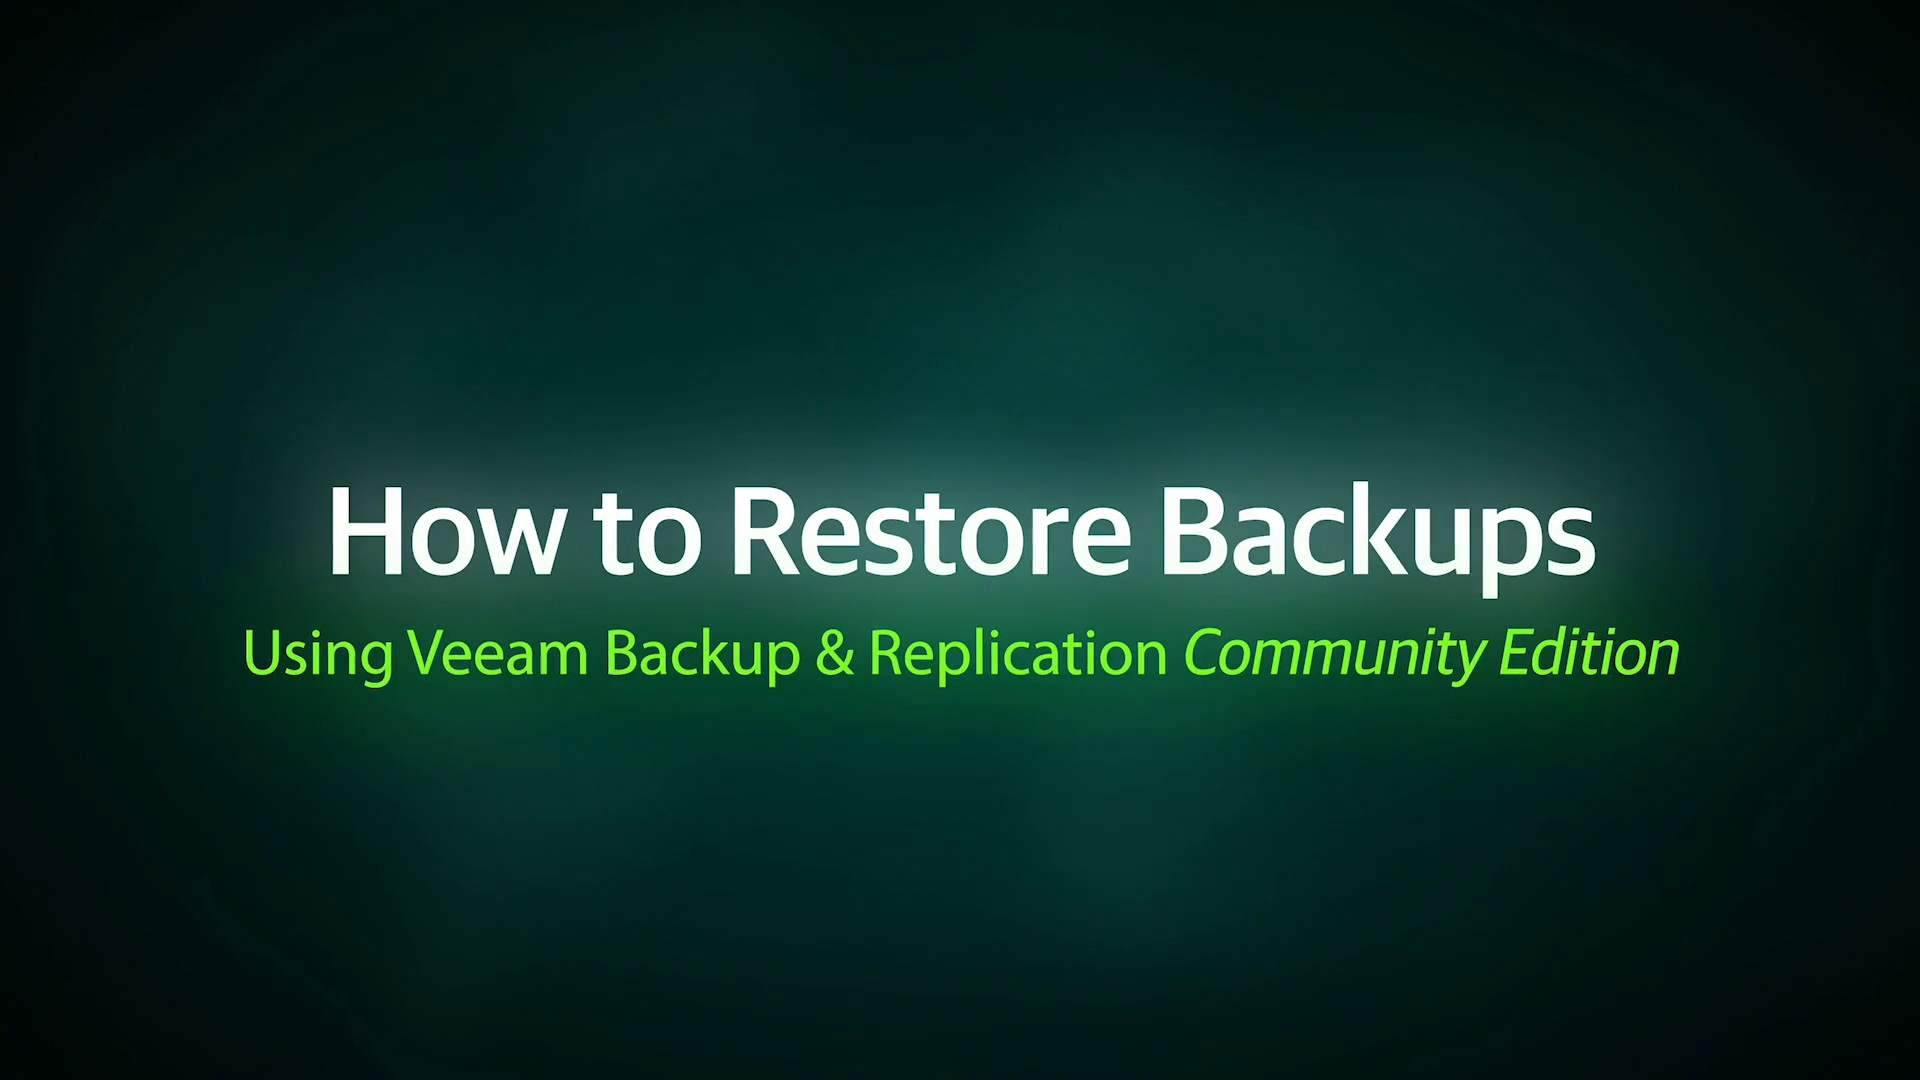 How to Restore Backups using Veeam Backup & Replication Community Edition